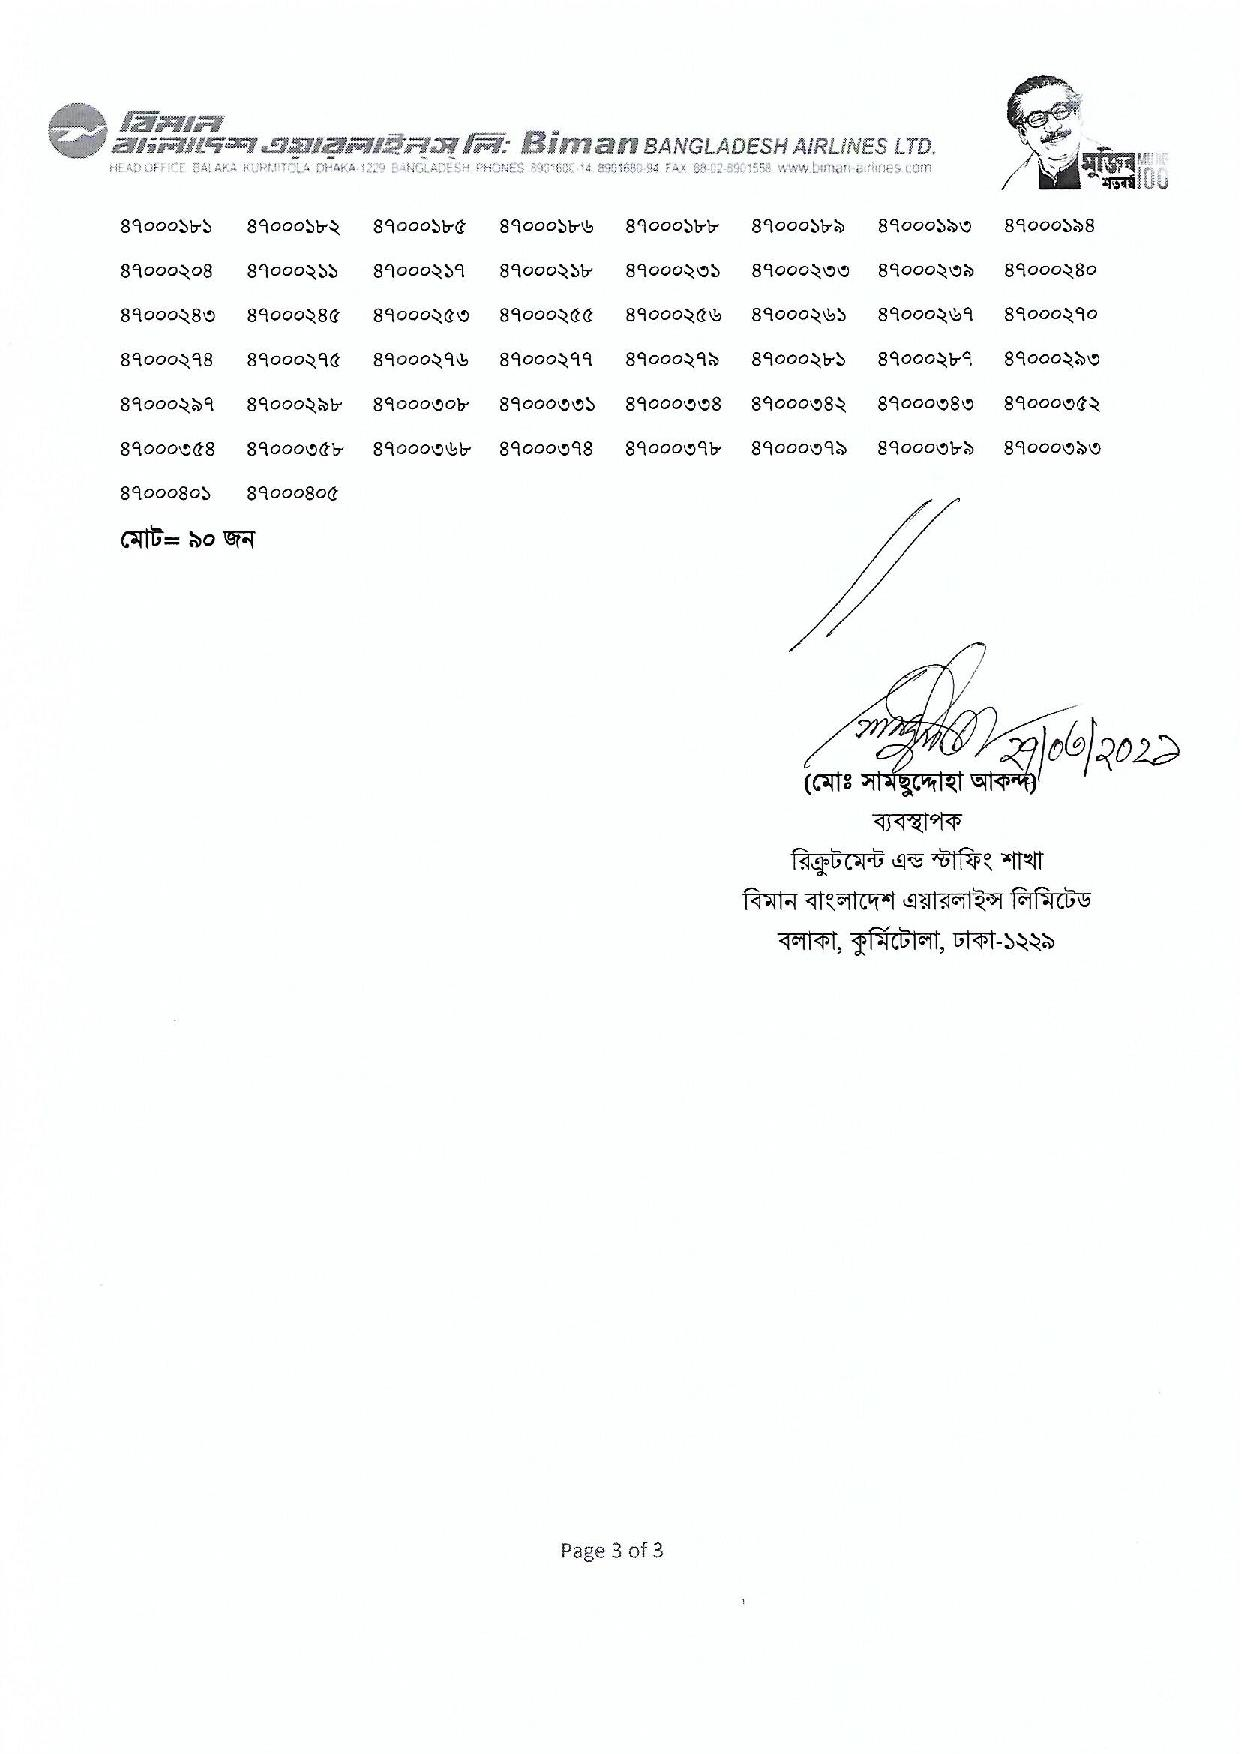 Biman Bangladesh Airlines Limited Exam result and viva date 2021